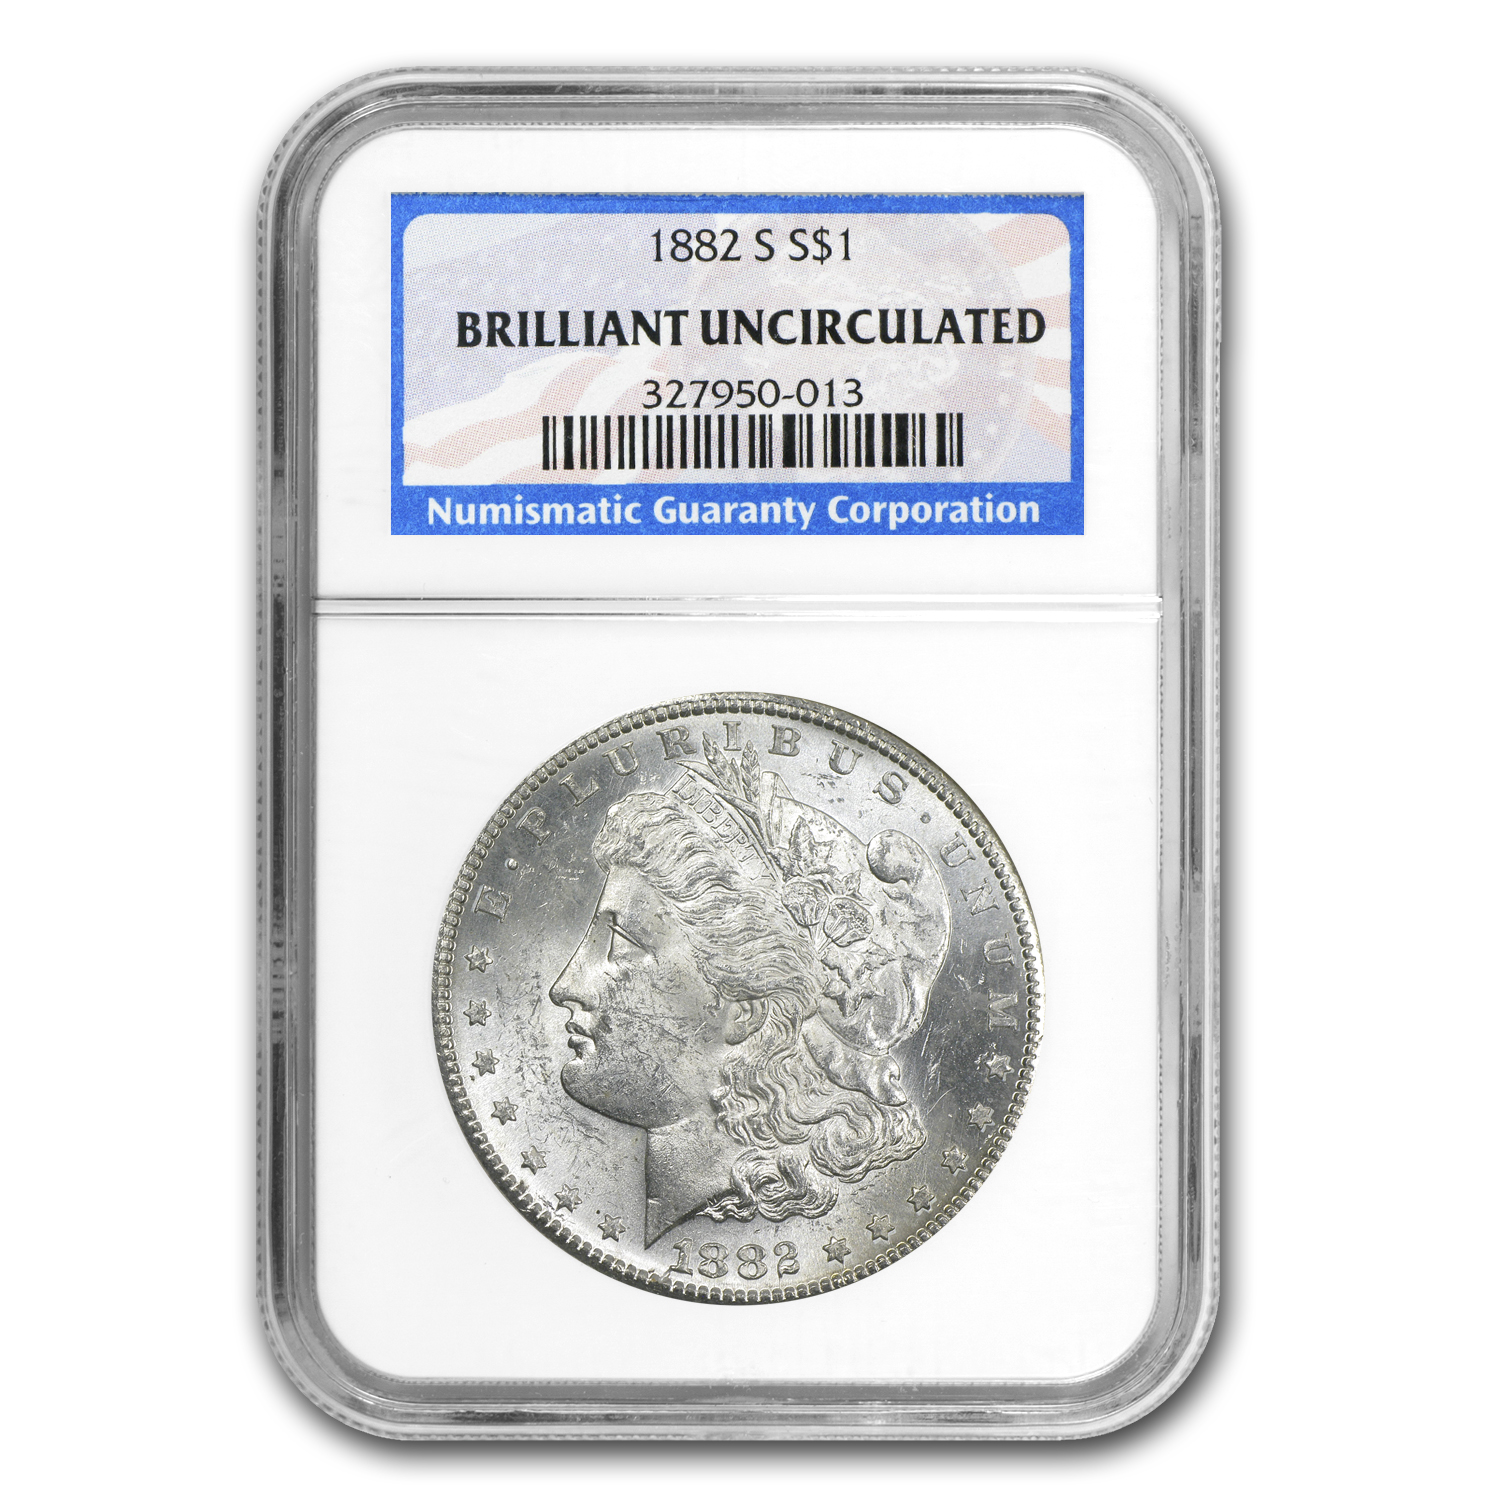 1878-1904 Morgan Dollars - Brilliant Uncirculated - NGC